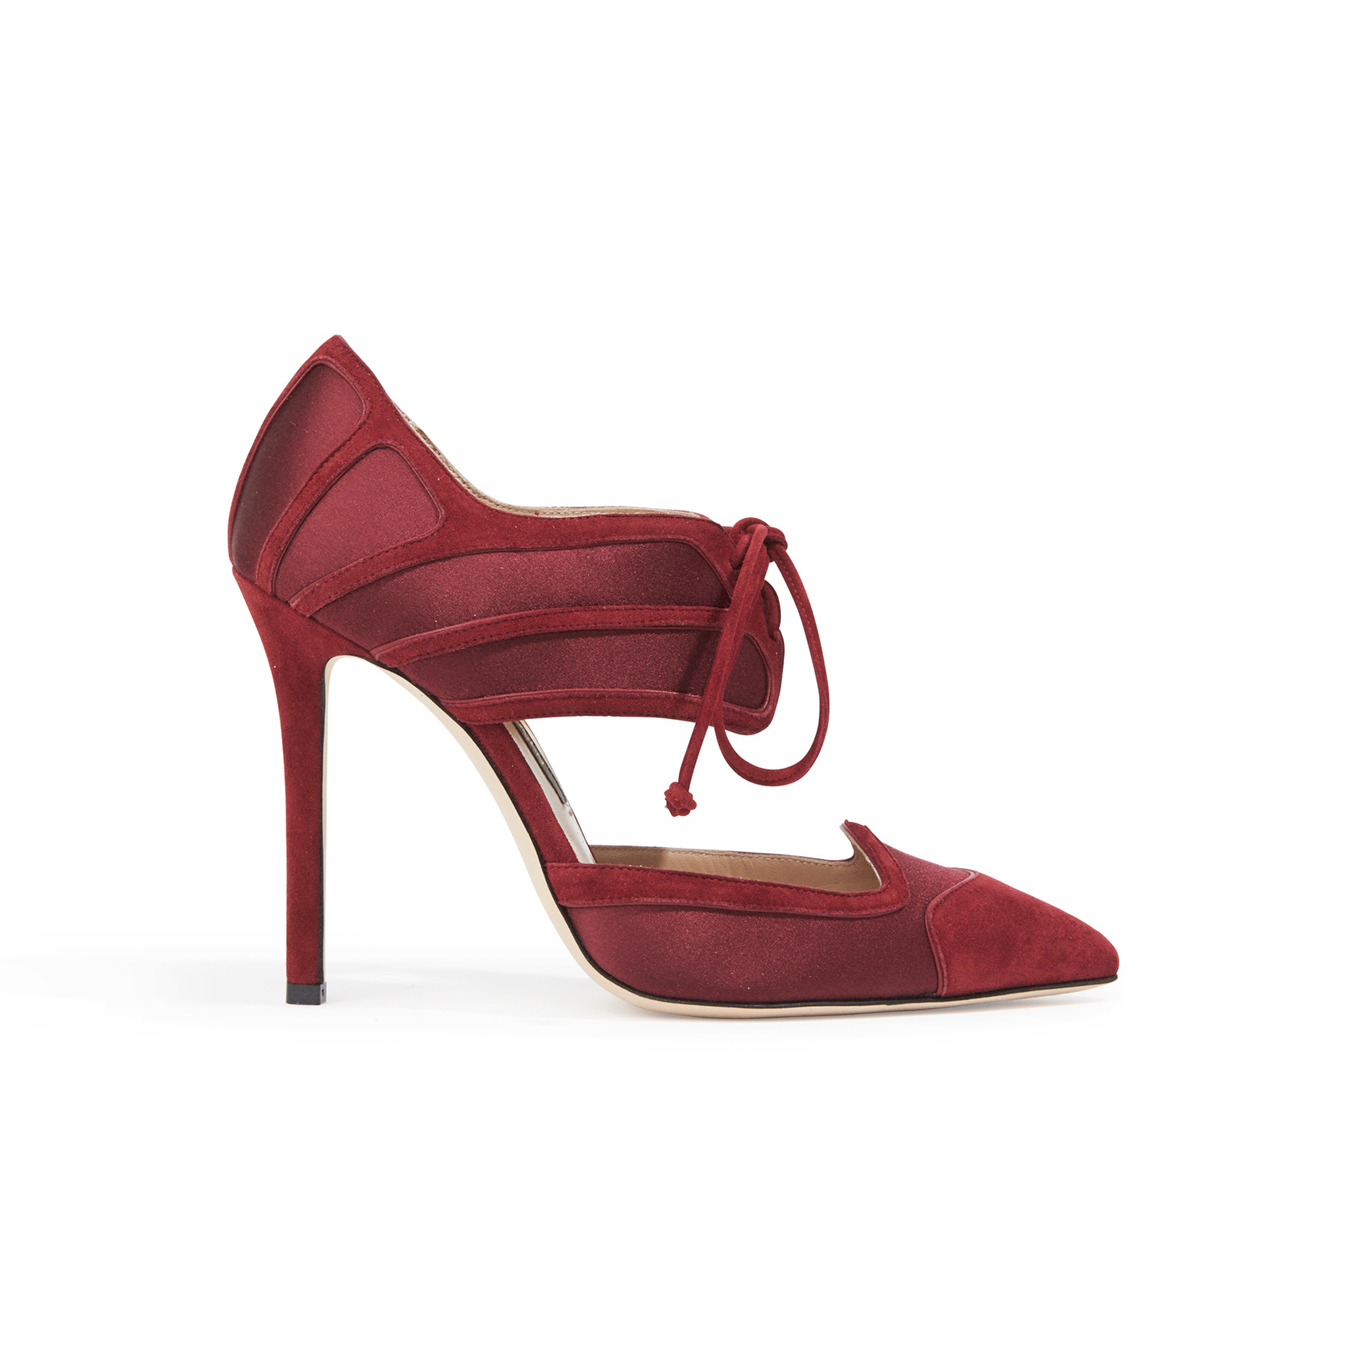 Zac Posen Lace-Up Pumps